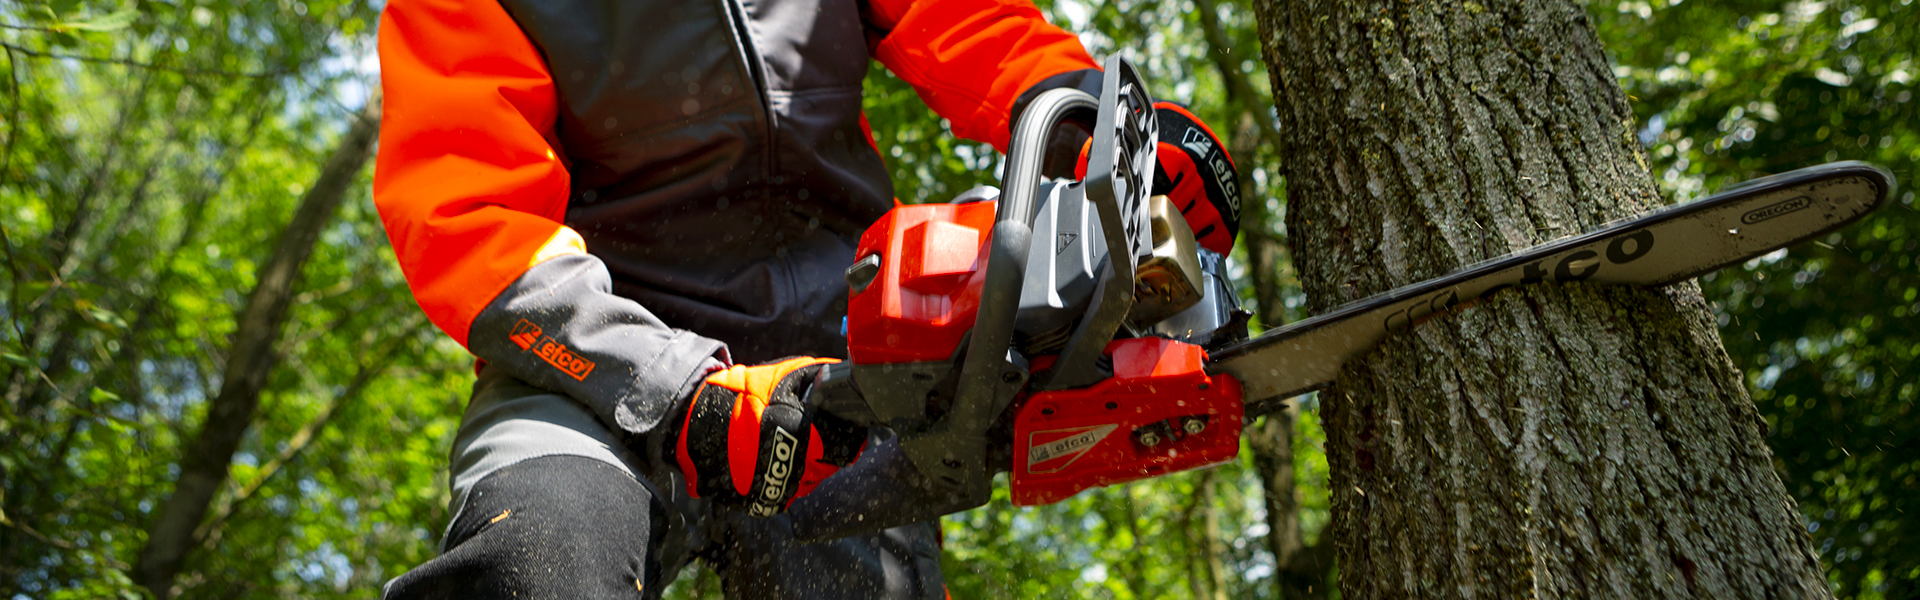 chainsaw is cutting the tree